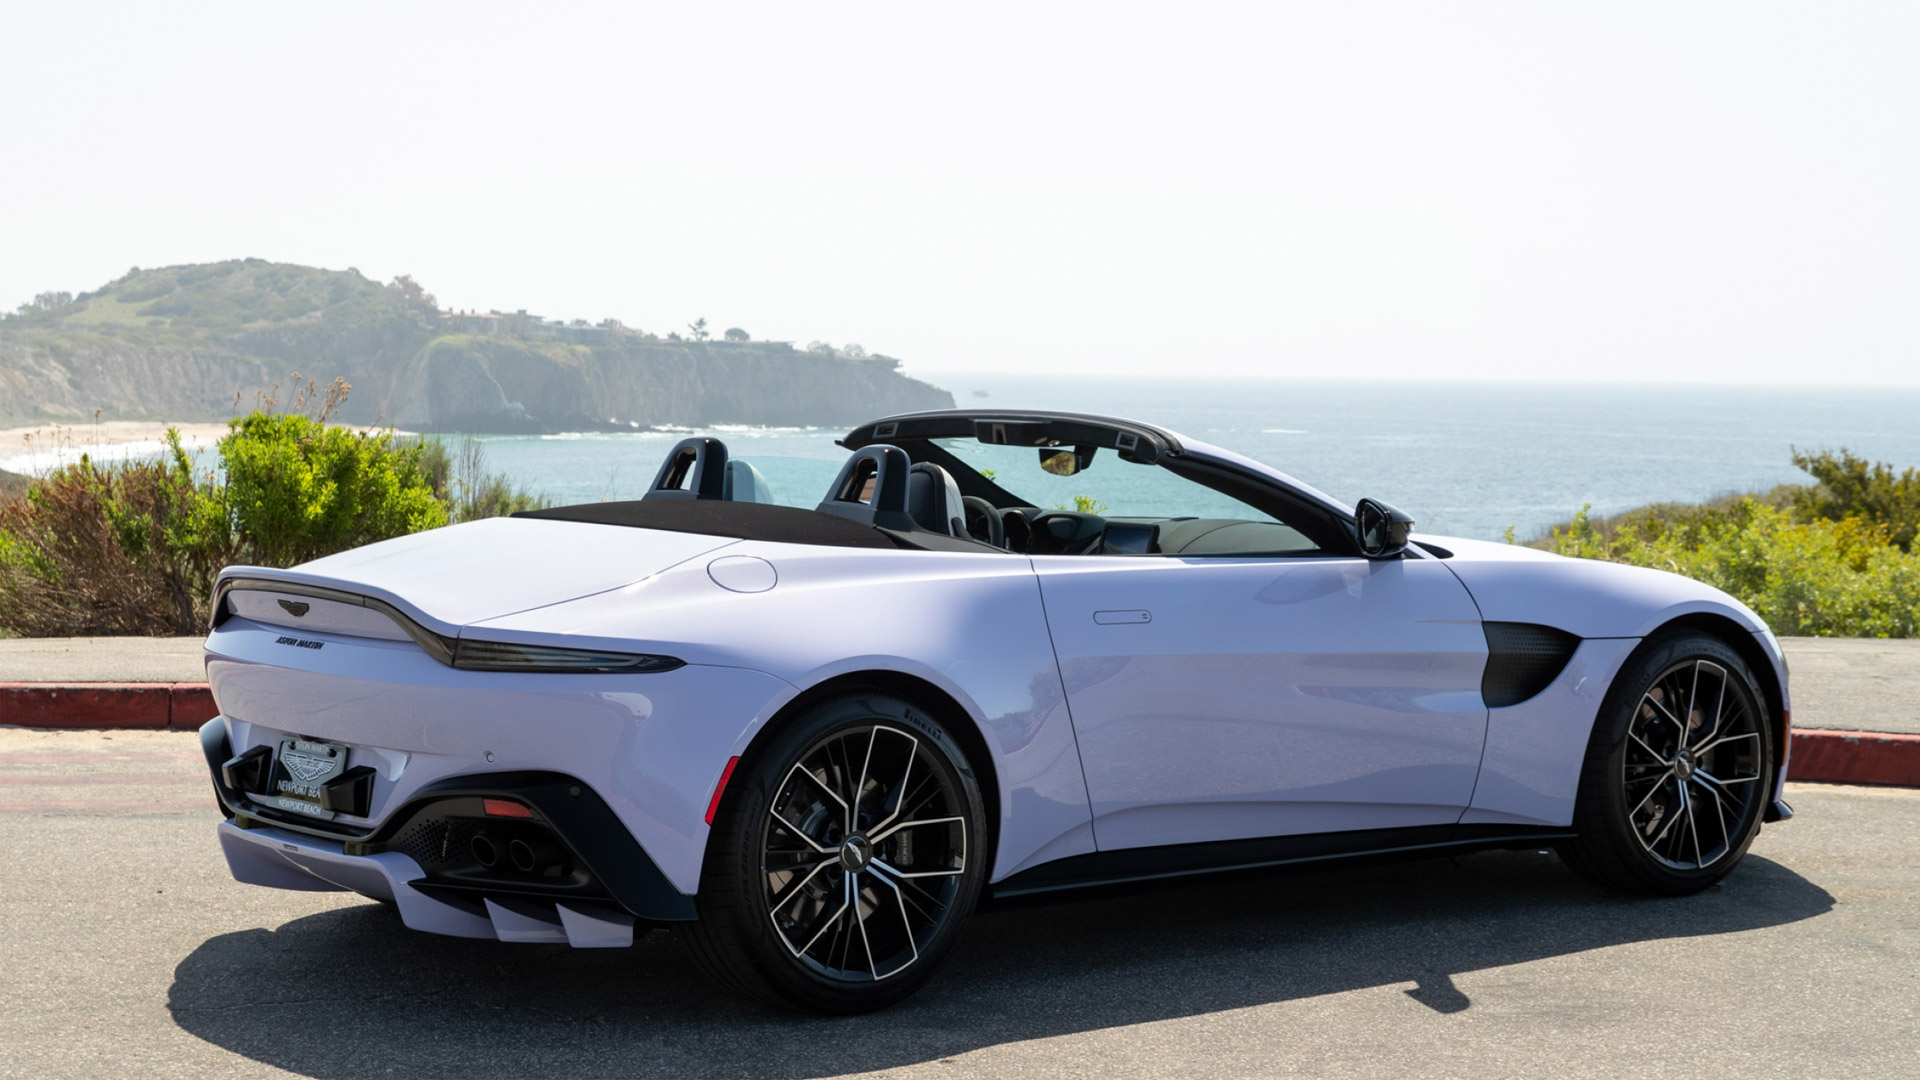 The Aston Martin Vantage Roadster in Cardamom Violet Angled Rear View